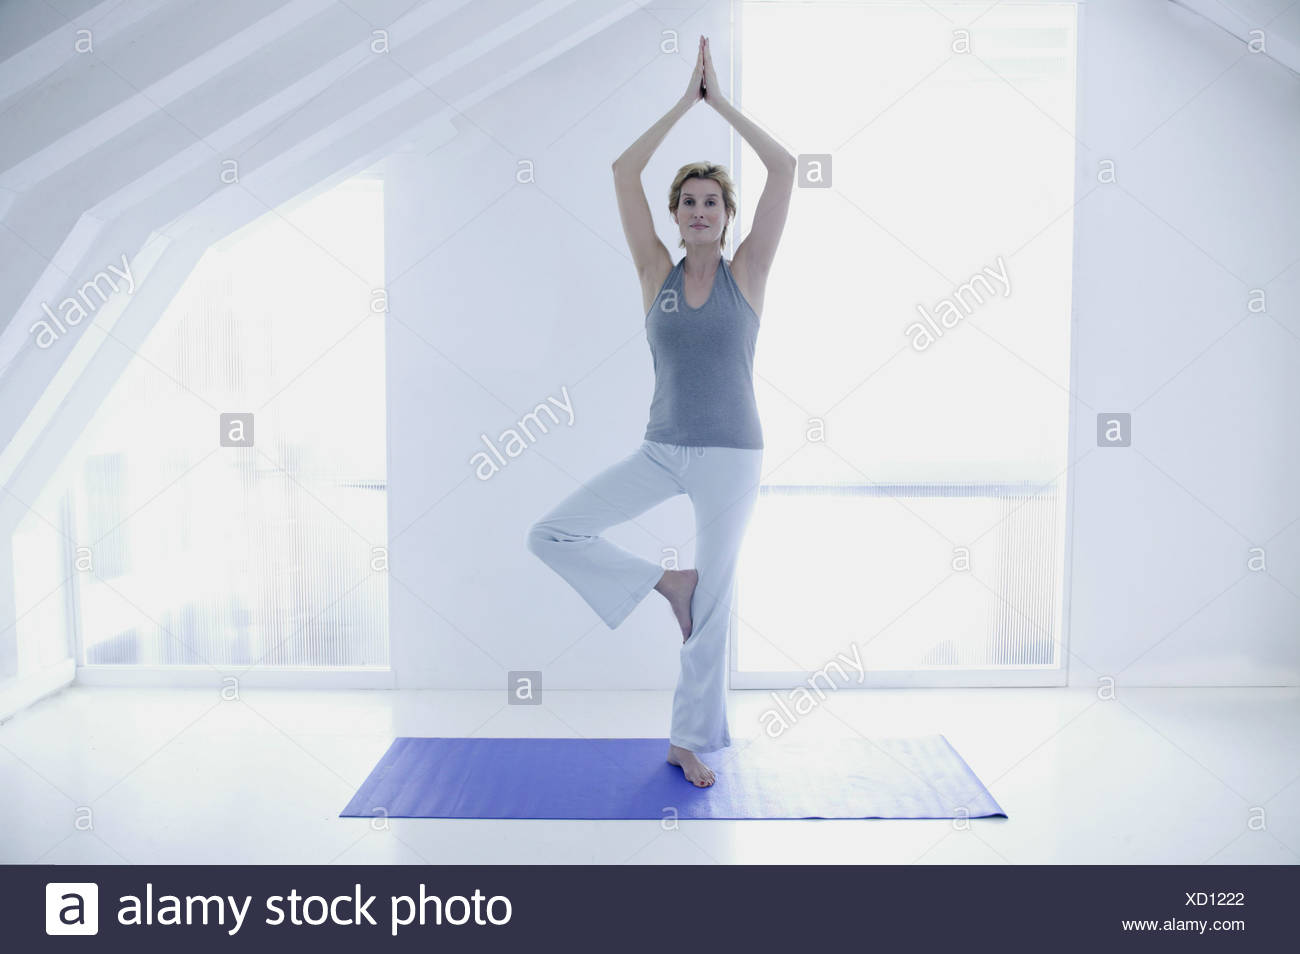 A woman in her forties doing yoga - Stock Image